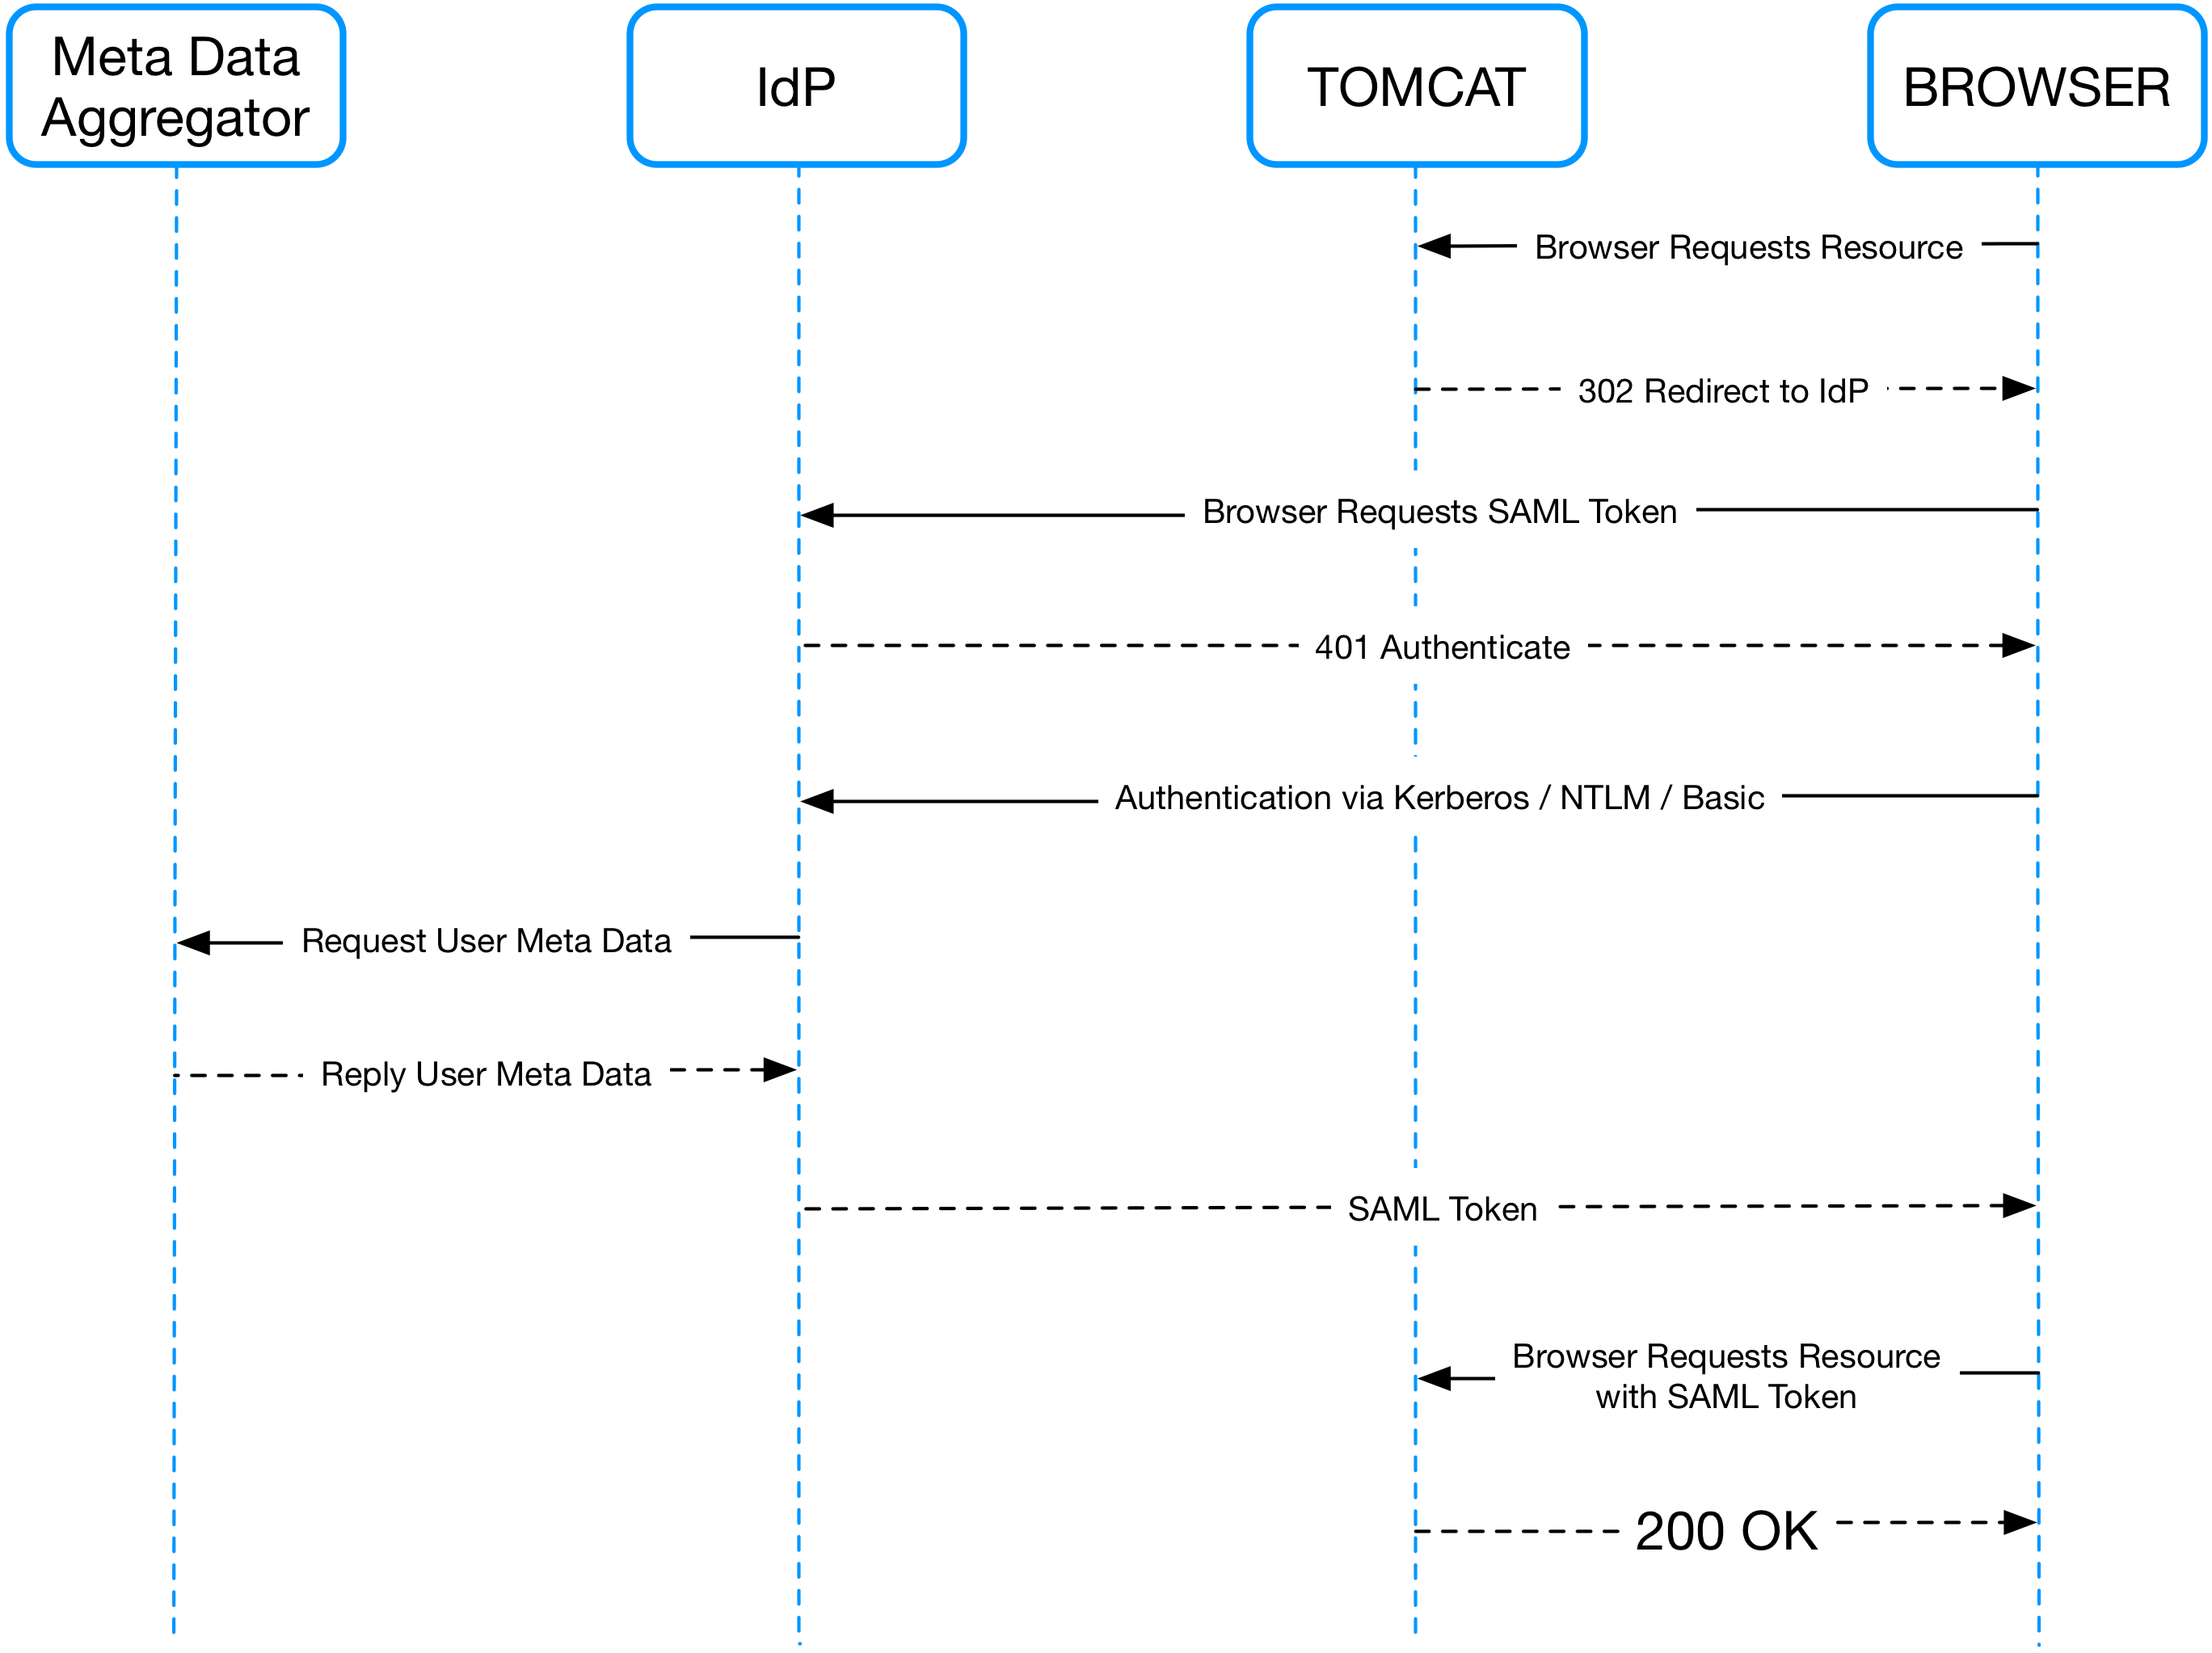 Single Sign-On Made Easy: SAML With Tomcat and PicketLink - DZone